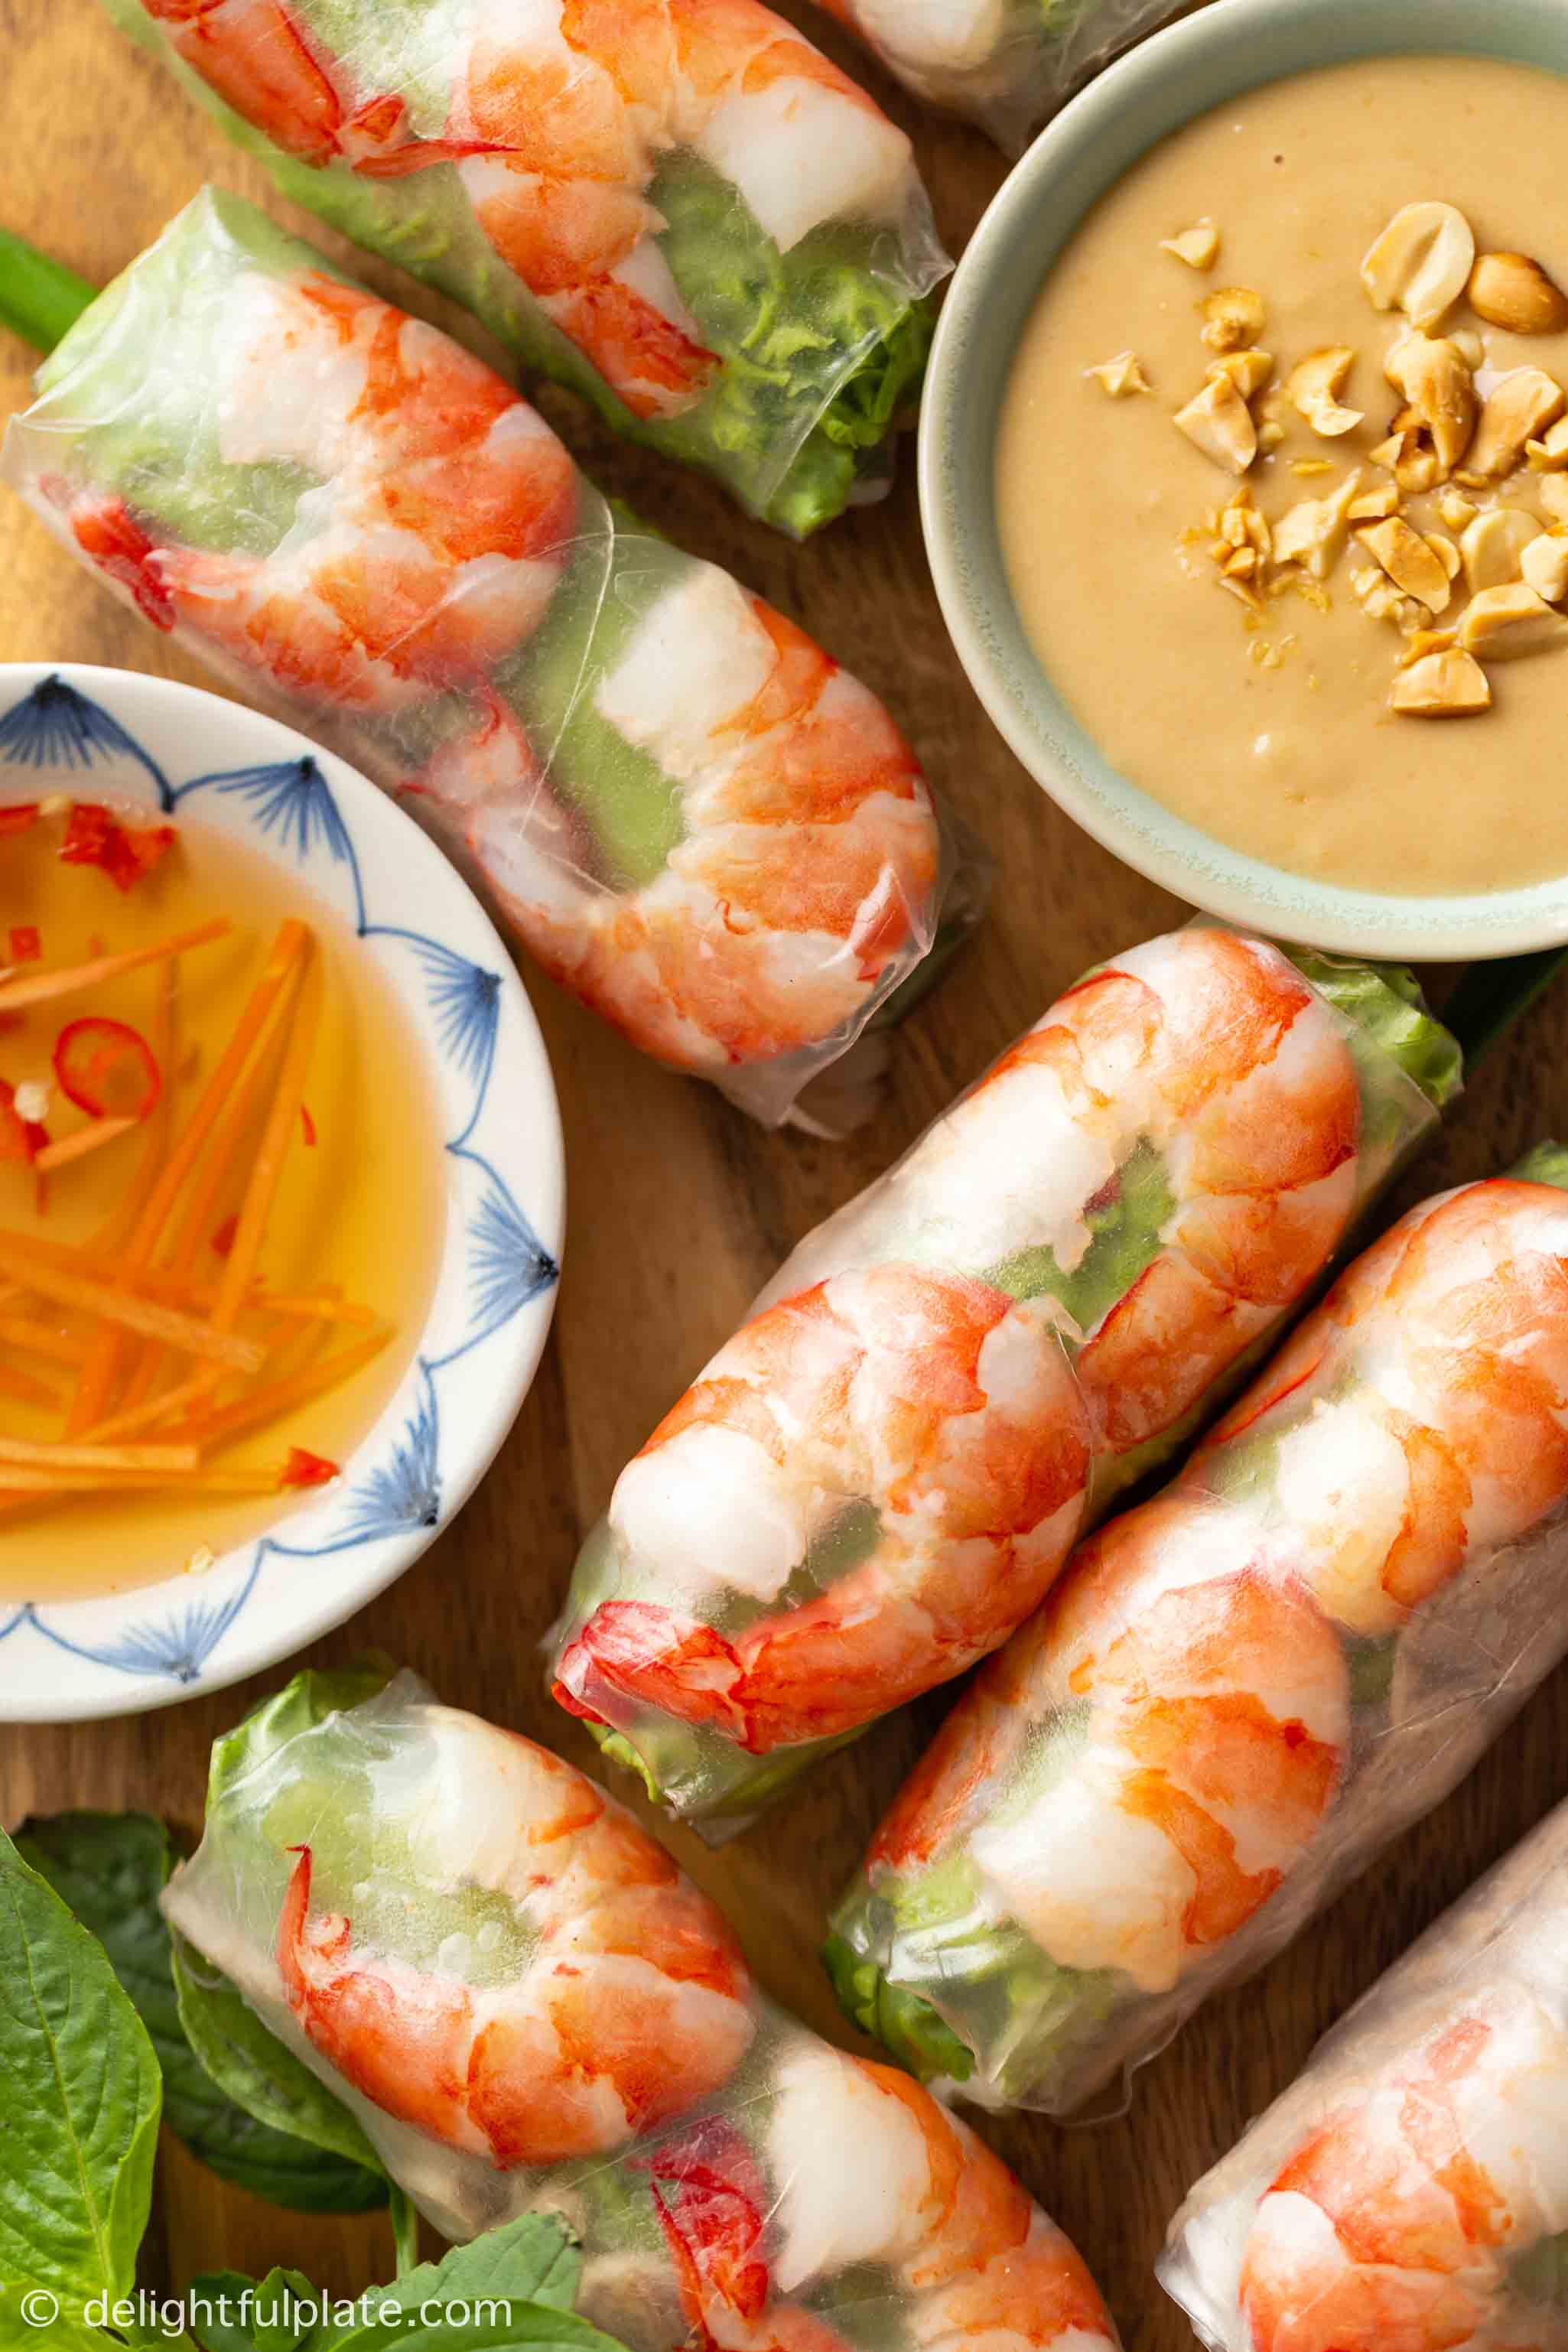 a serving plate with Vietnamese summer rolls and two types of dipping sauce